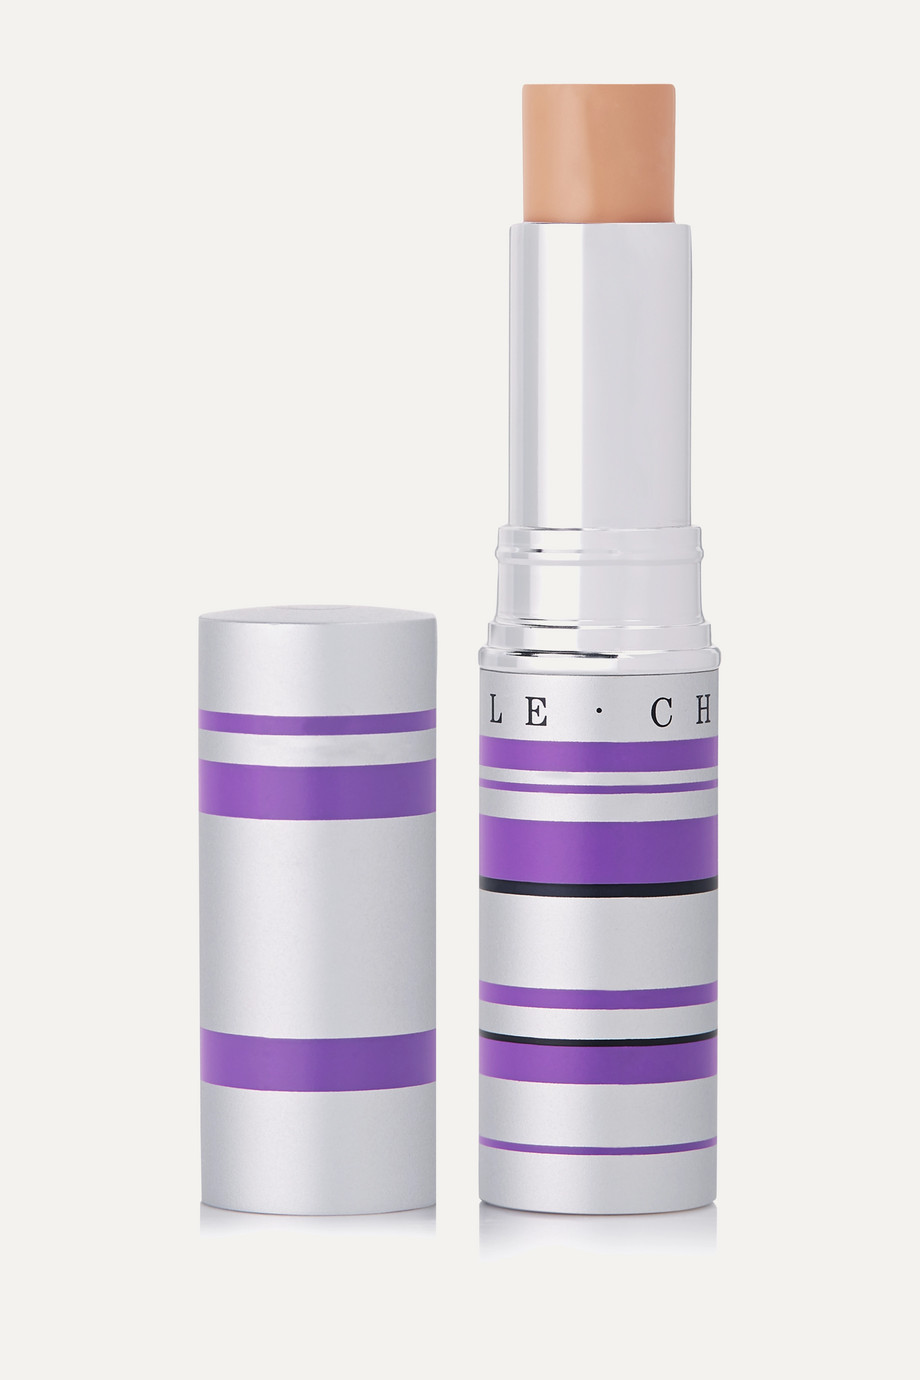 Chantecaille Real Skin + Eye and Face Stick - 3